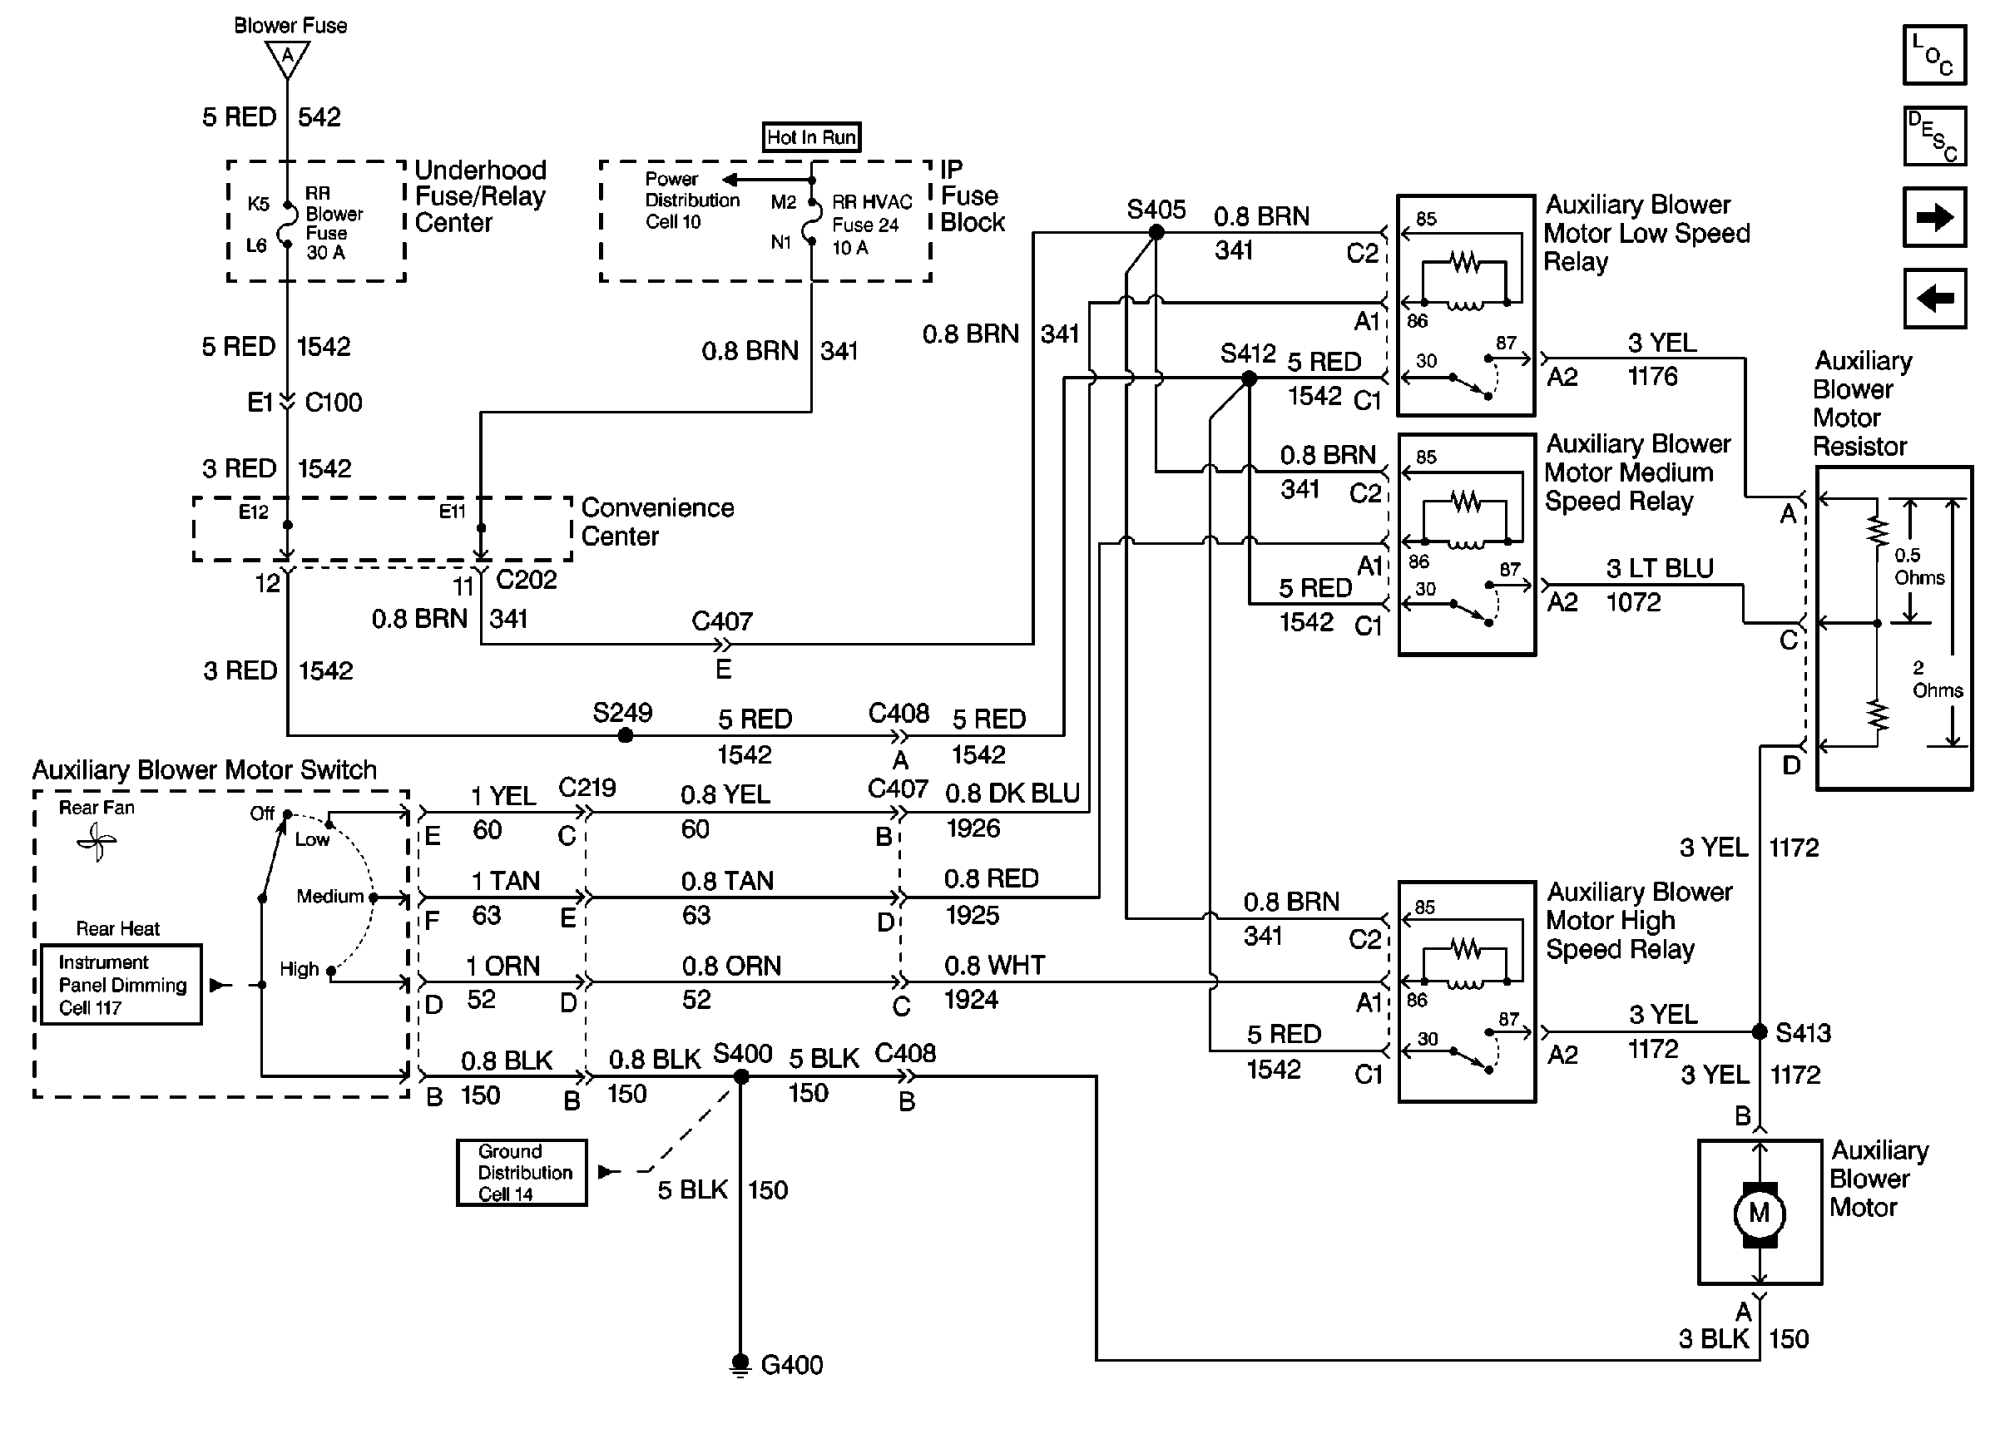 hight resolution of wireing diagram of the fuel pump curcuit on a 1999 chevy express van chevy express van fuel pump wiring on gm ecm in addition 1998 chevy